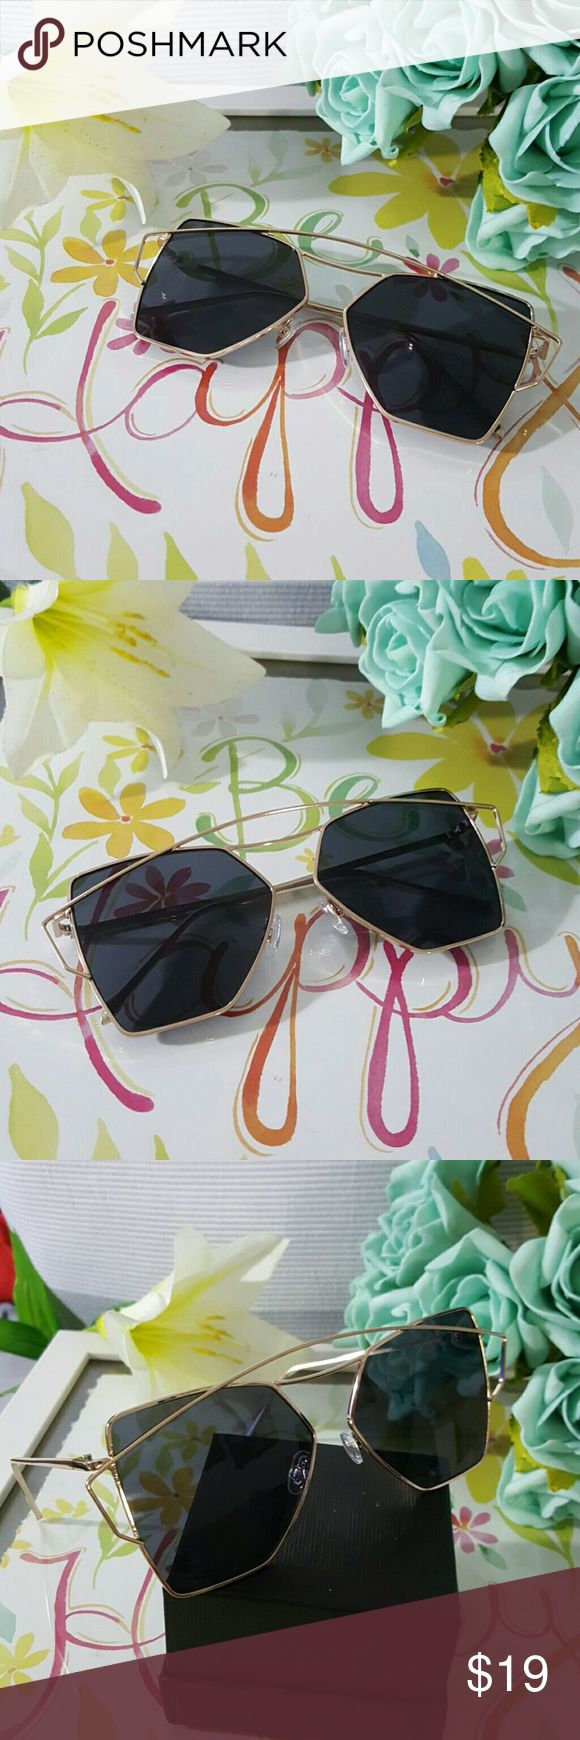 NEW TRENDY CAT EYE  VINTAGE  SUNGLASSES Gold frame black lens NEW TRENDY CAT EYE  VINTAGE  SUNGLASSES Cat eye Women Sunglasses 2017 New Brand Design Mirror Flat  Vintage Cateye Fashion sun glasses lady Eyewear  58mm   ALSO AVAILABLE IN MY CLOSET. LATEX WAIST TRAINER NEOPRENE CONTROL CINCHER VEST CORSET BUTT LIFTER PADDED PANTY SWIMSUIT WOMAN MEN SUNGLASSES SILICONE BRA ADHESIVE NIPPLE COVERS PHONE Accessories Sunglasses